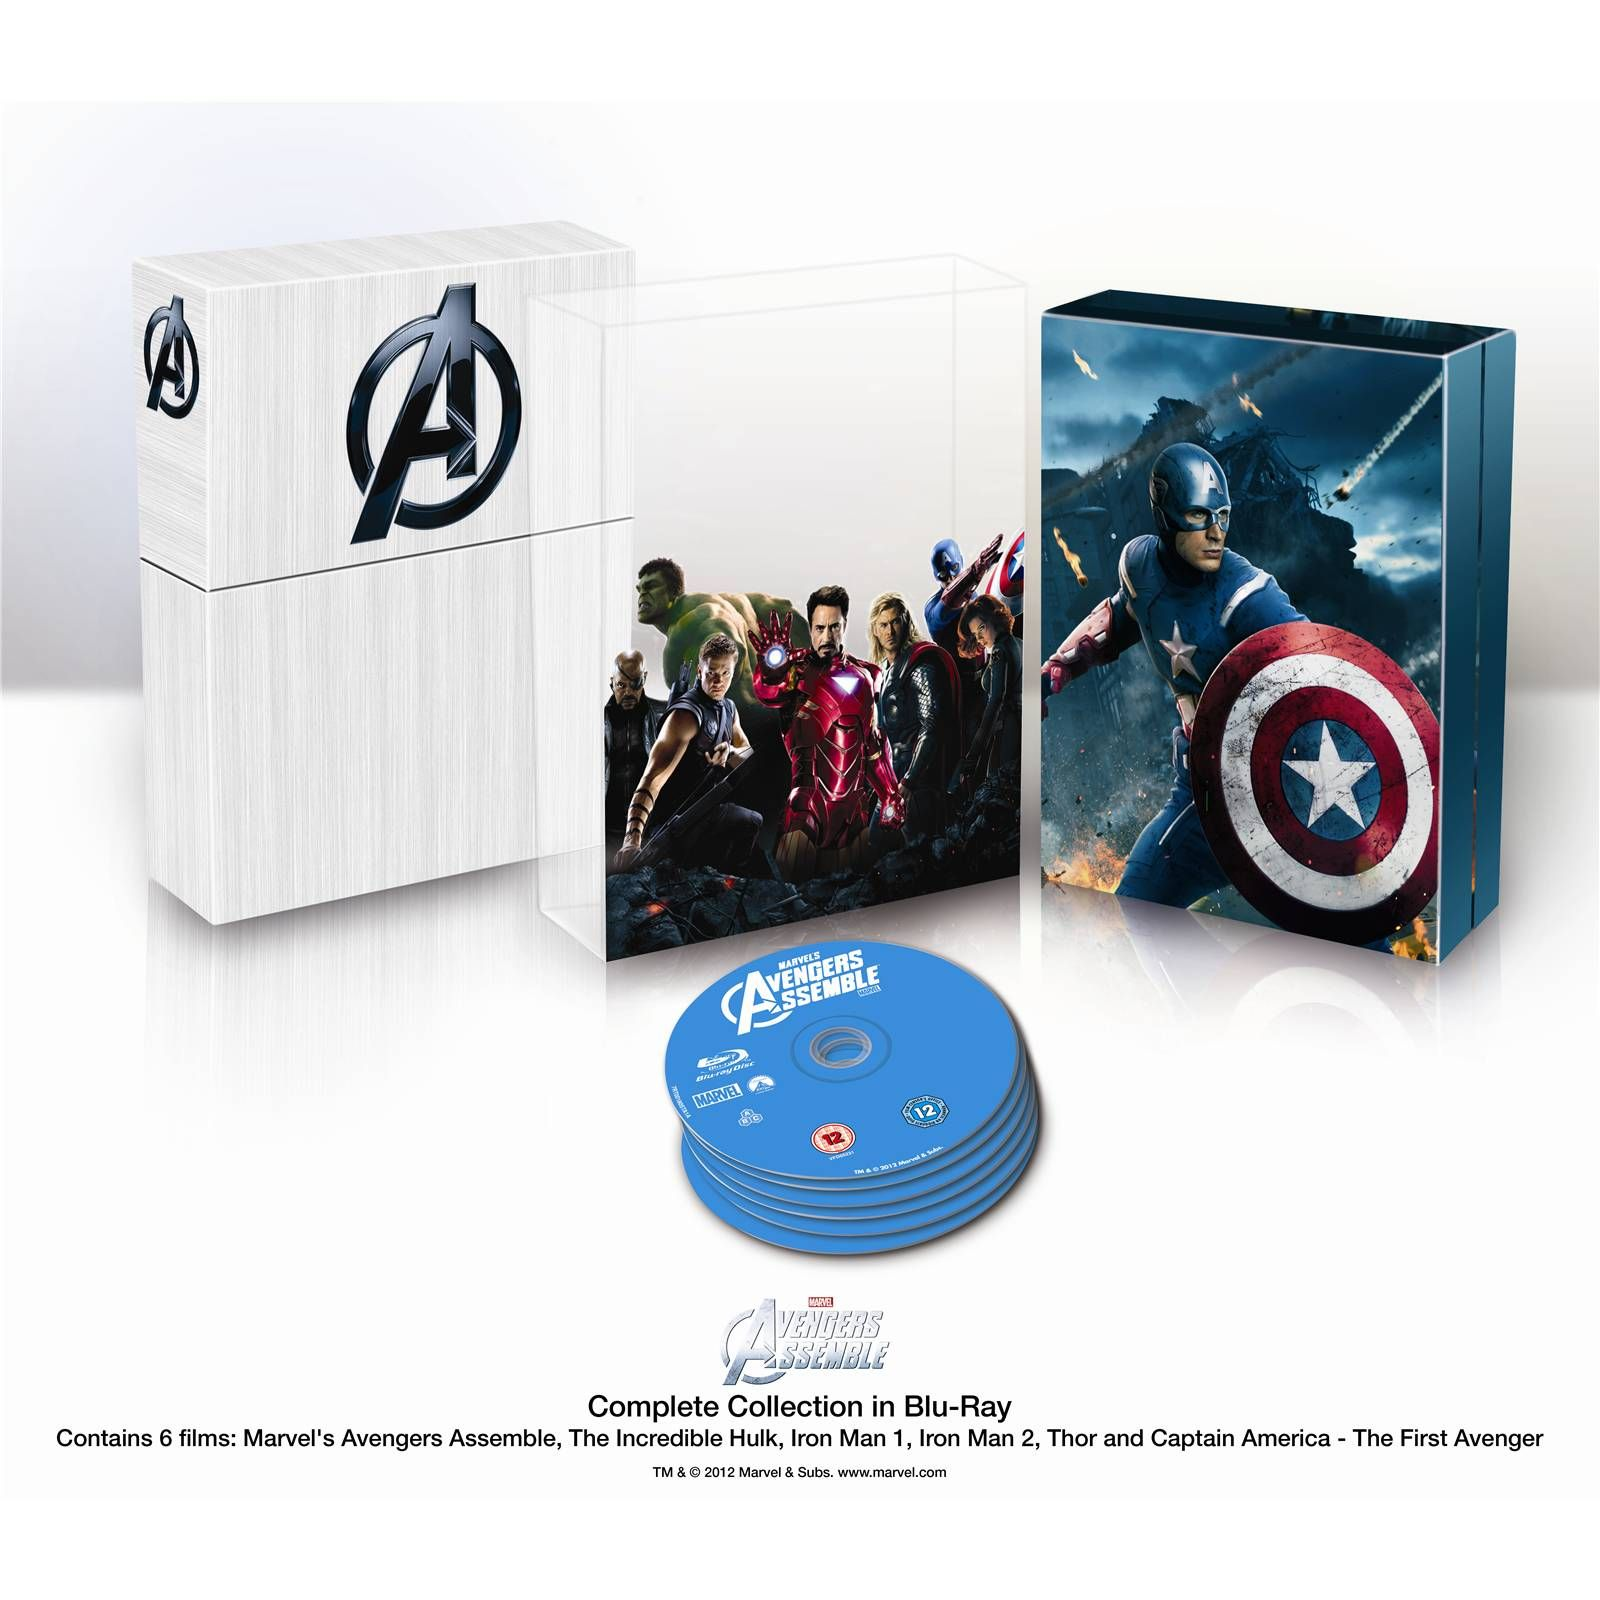 Play Com Buy Marvel S The Avengers International Collector S Box Set 6 Discs Blu Ray Online At Play Com And Re Boxset Marvel Avengers Assemble Iron Men 1